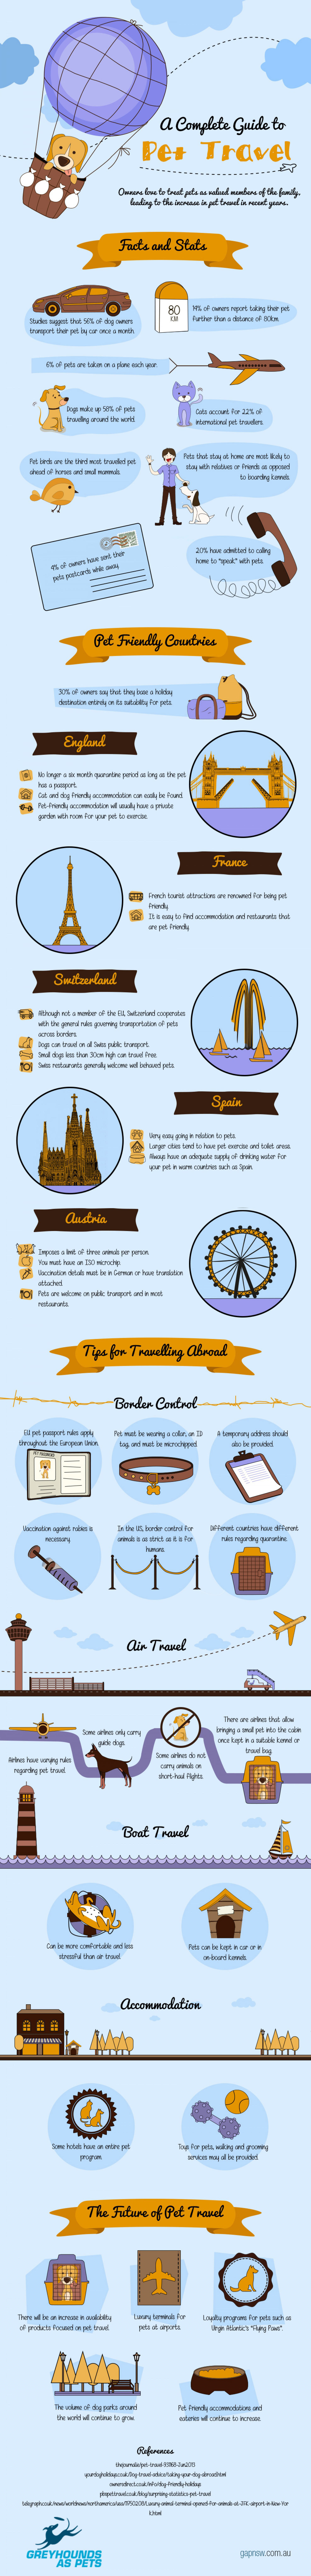 Complete Guide to Pet Travel Infographic